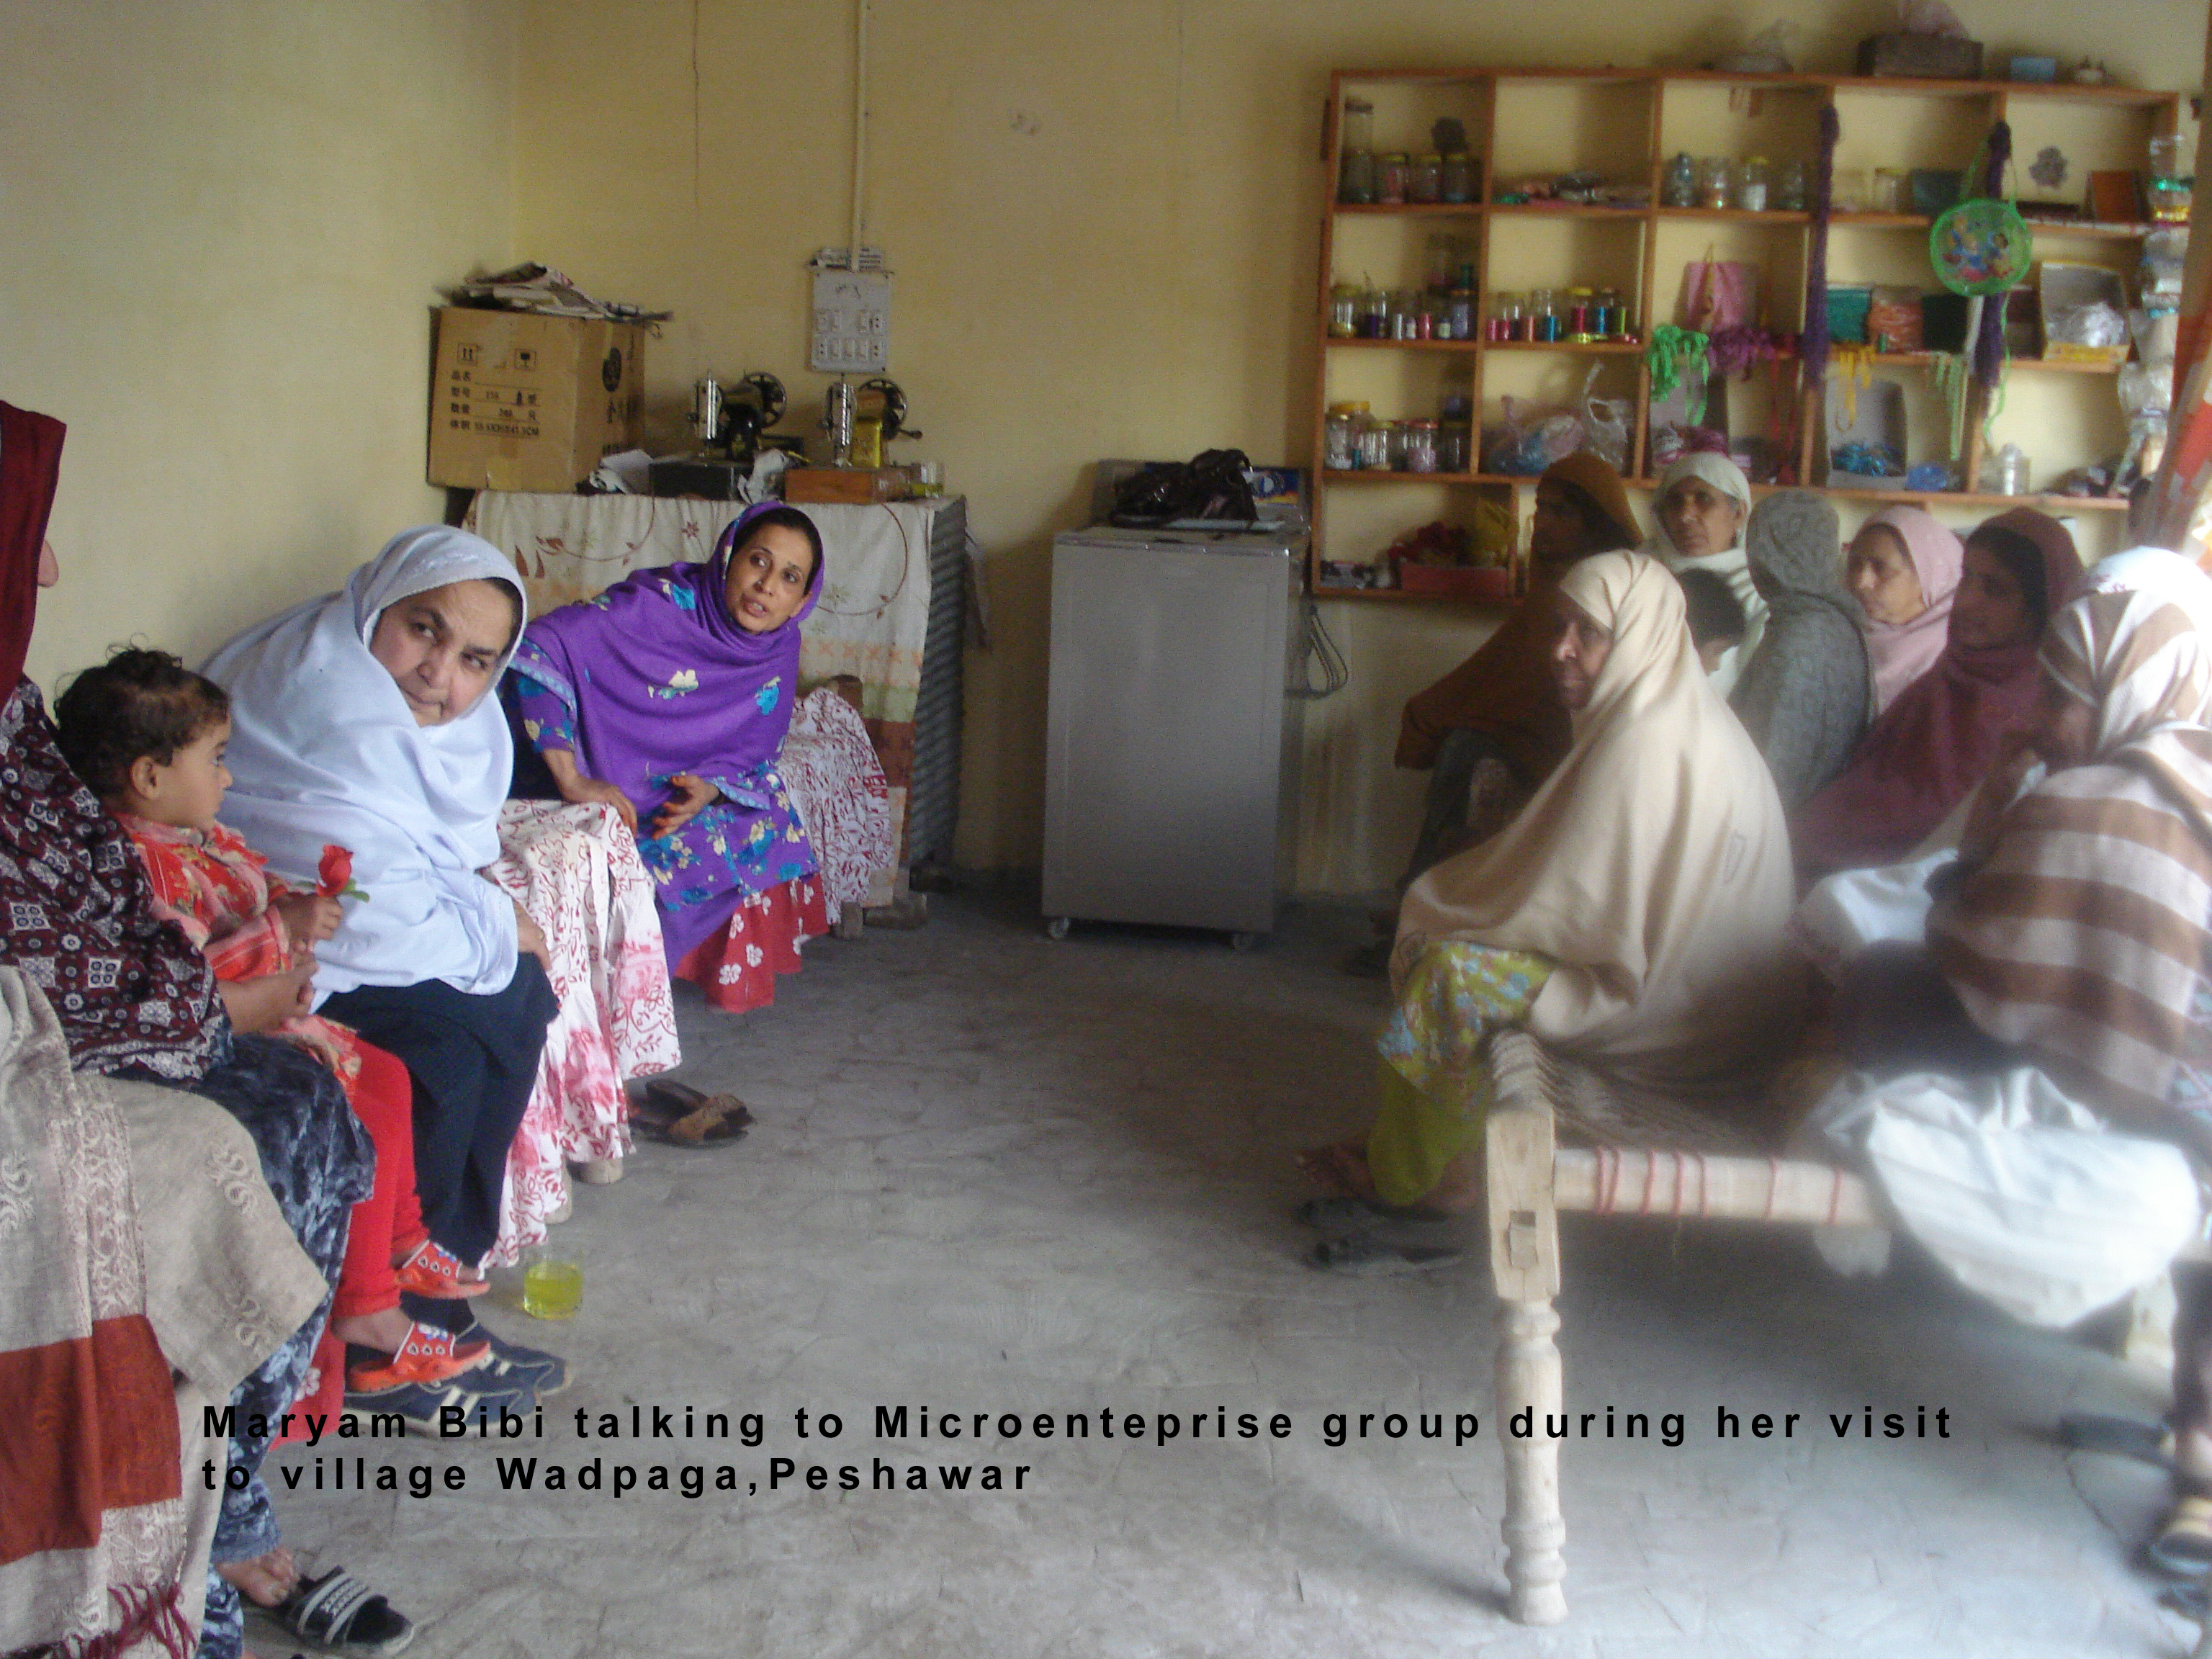 Maryam visits microenterprise group in Wadpaga, Peshawar